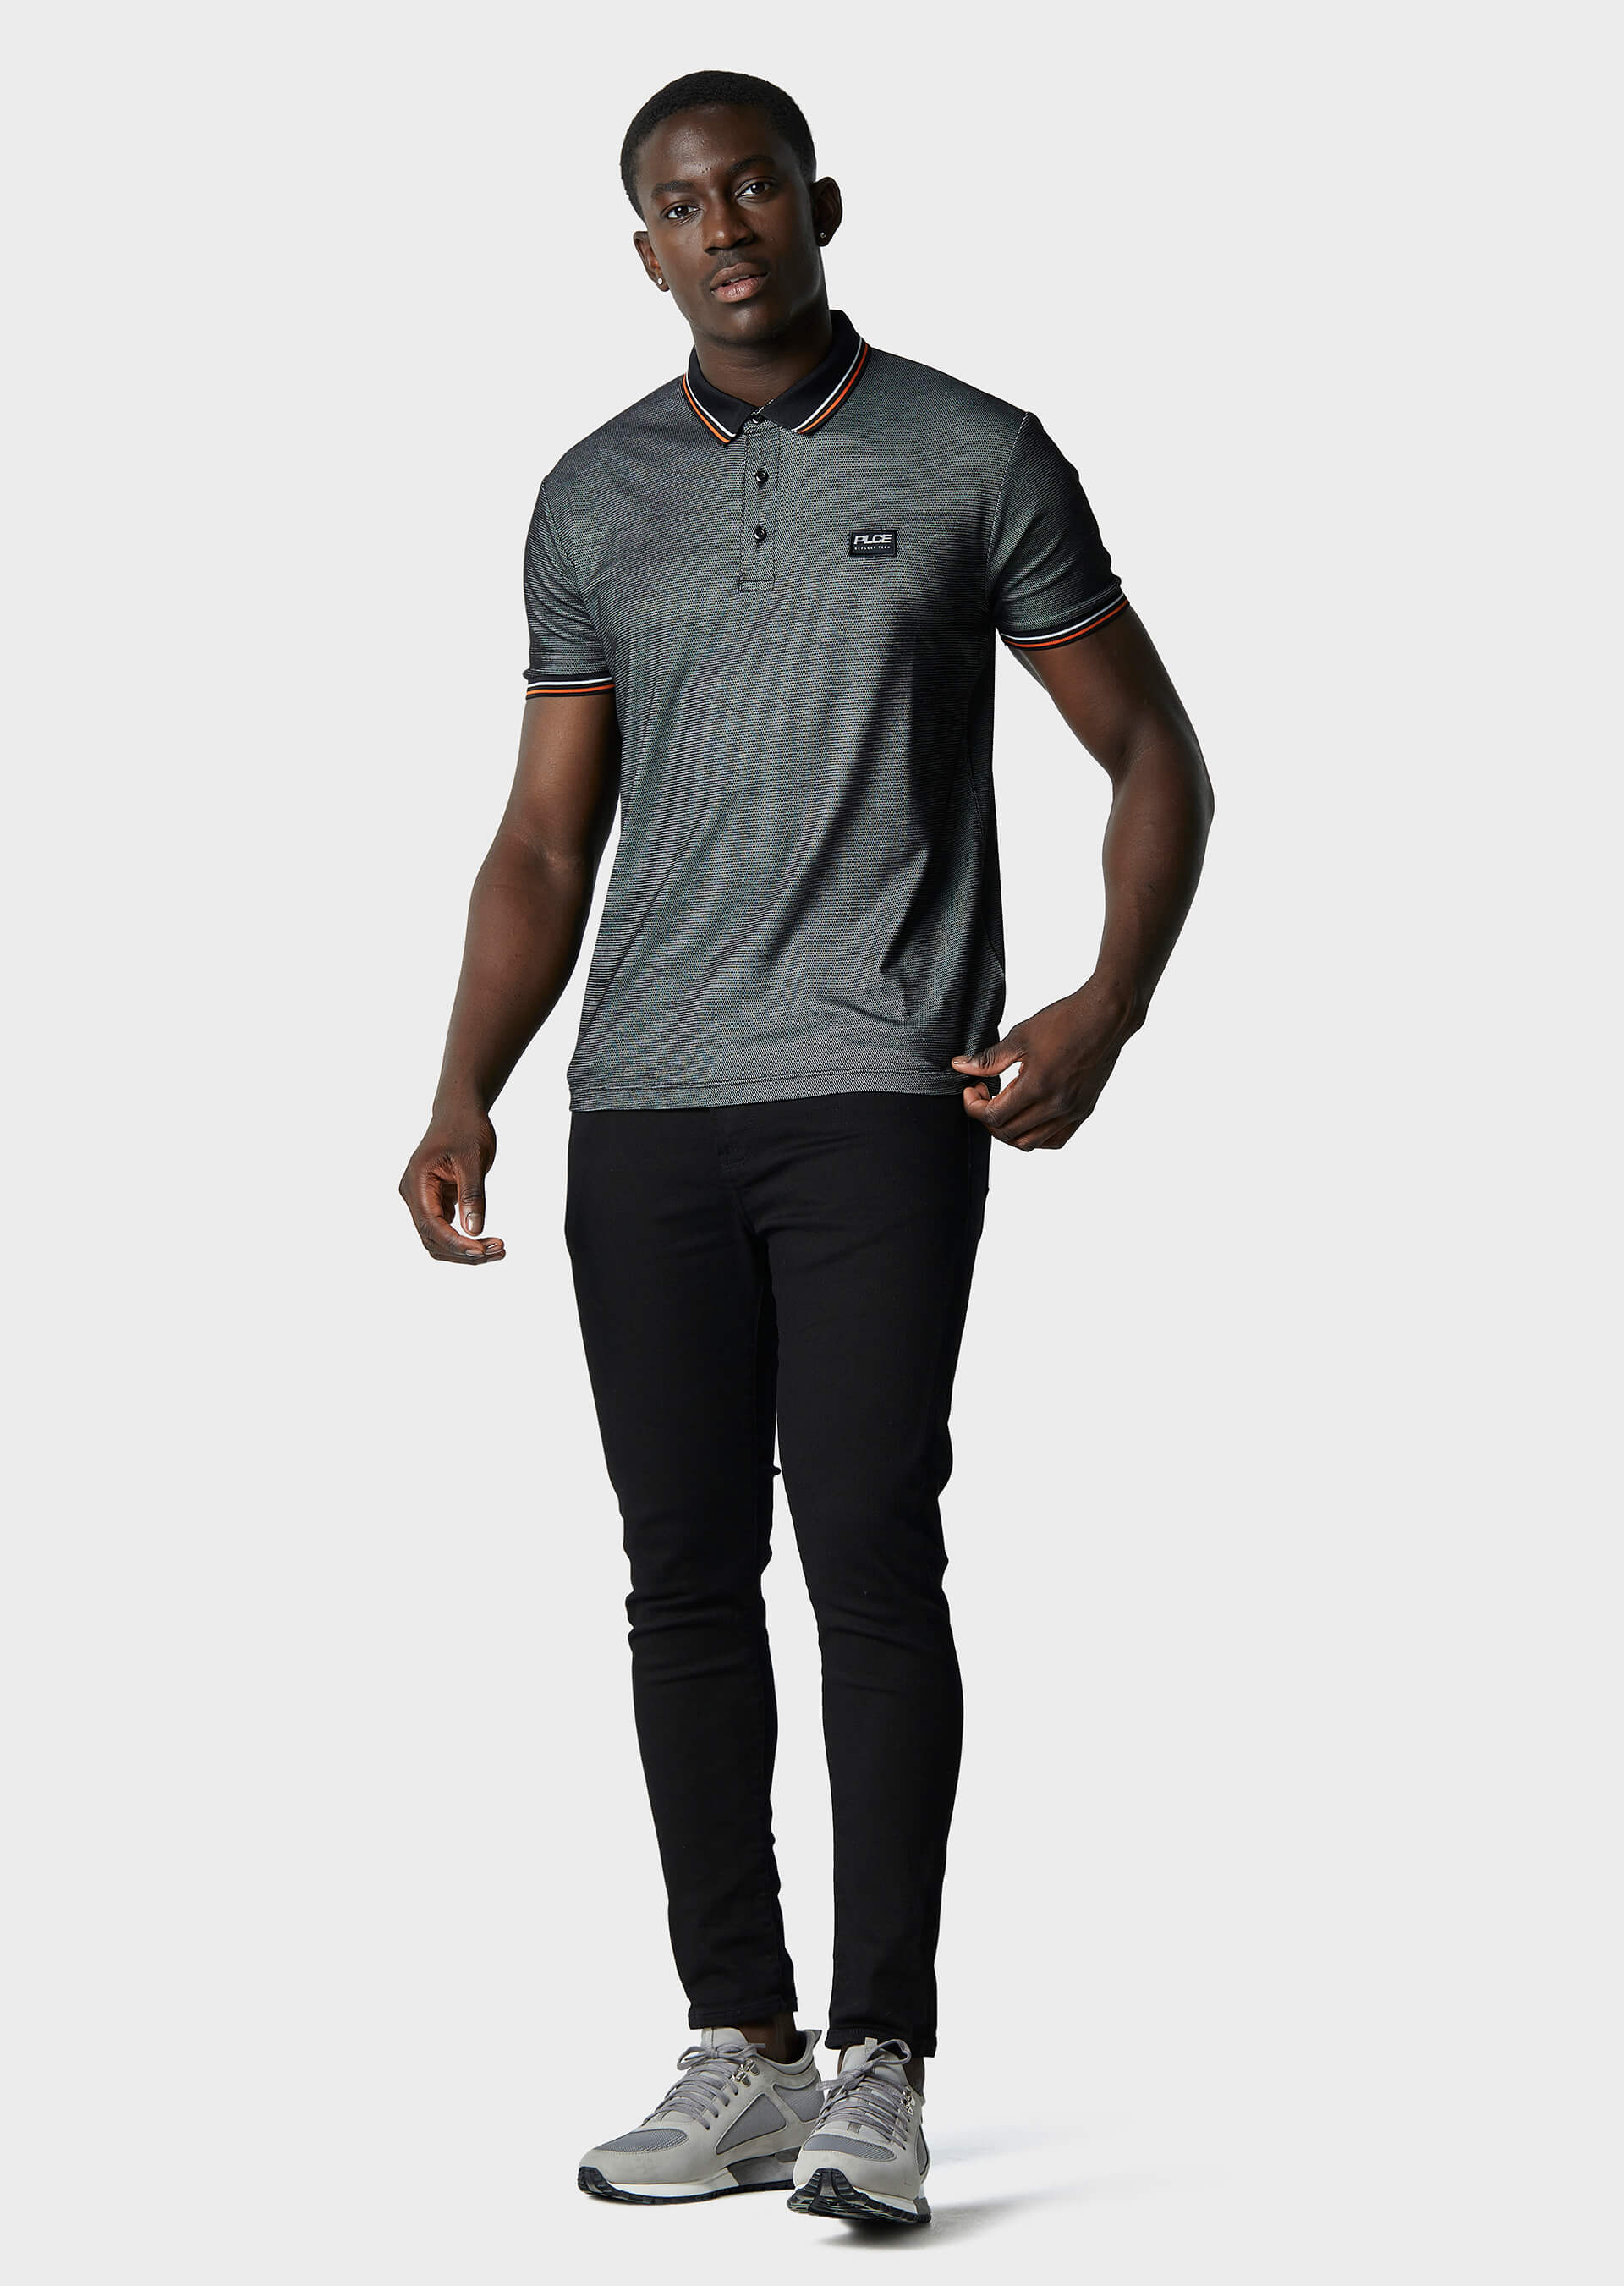 Moxley Black Polo Shirt second_image